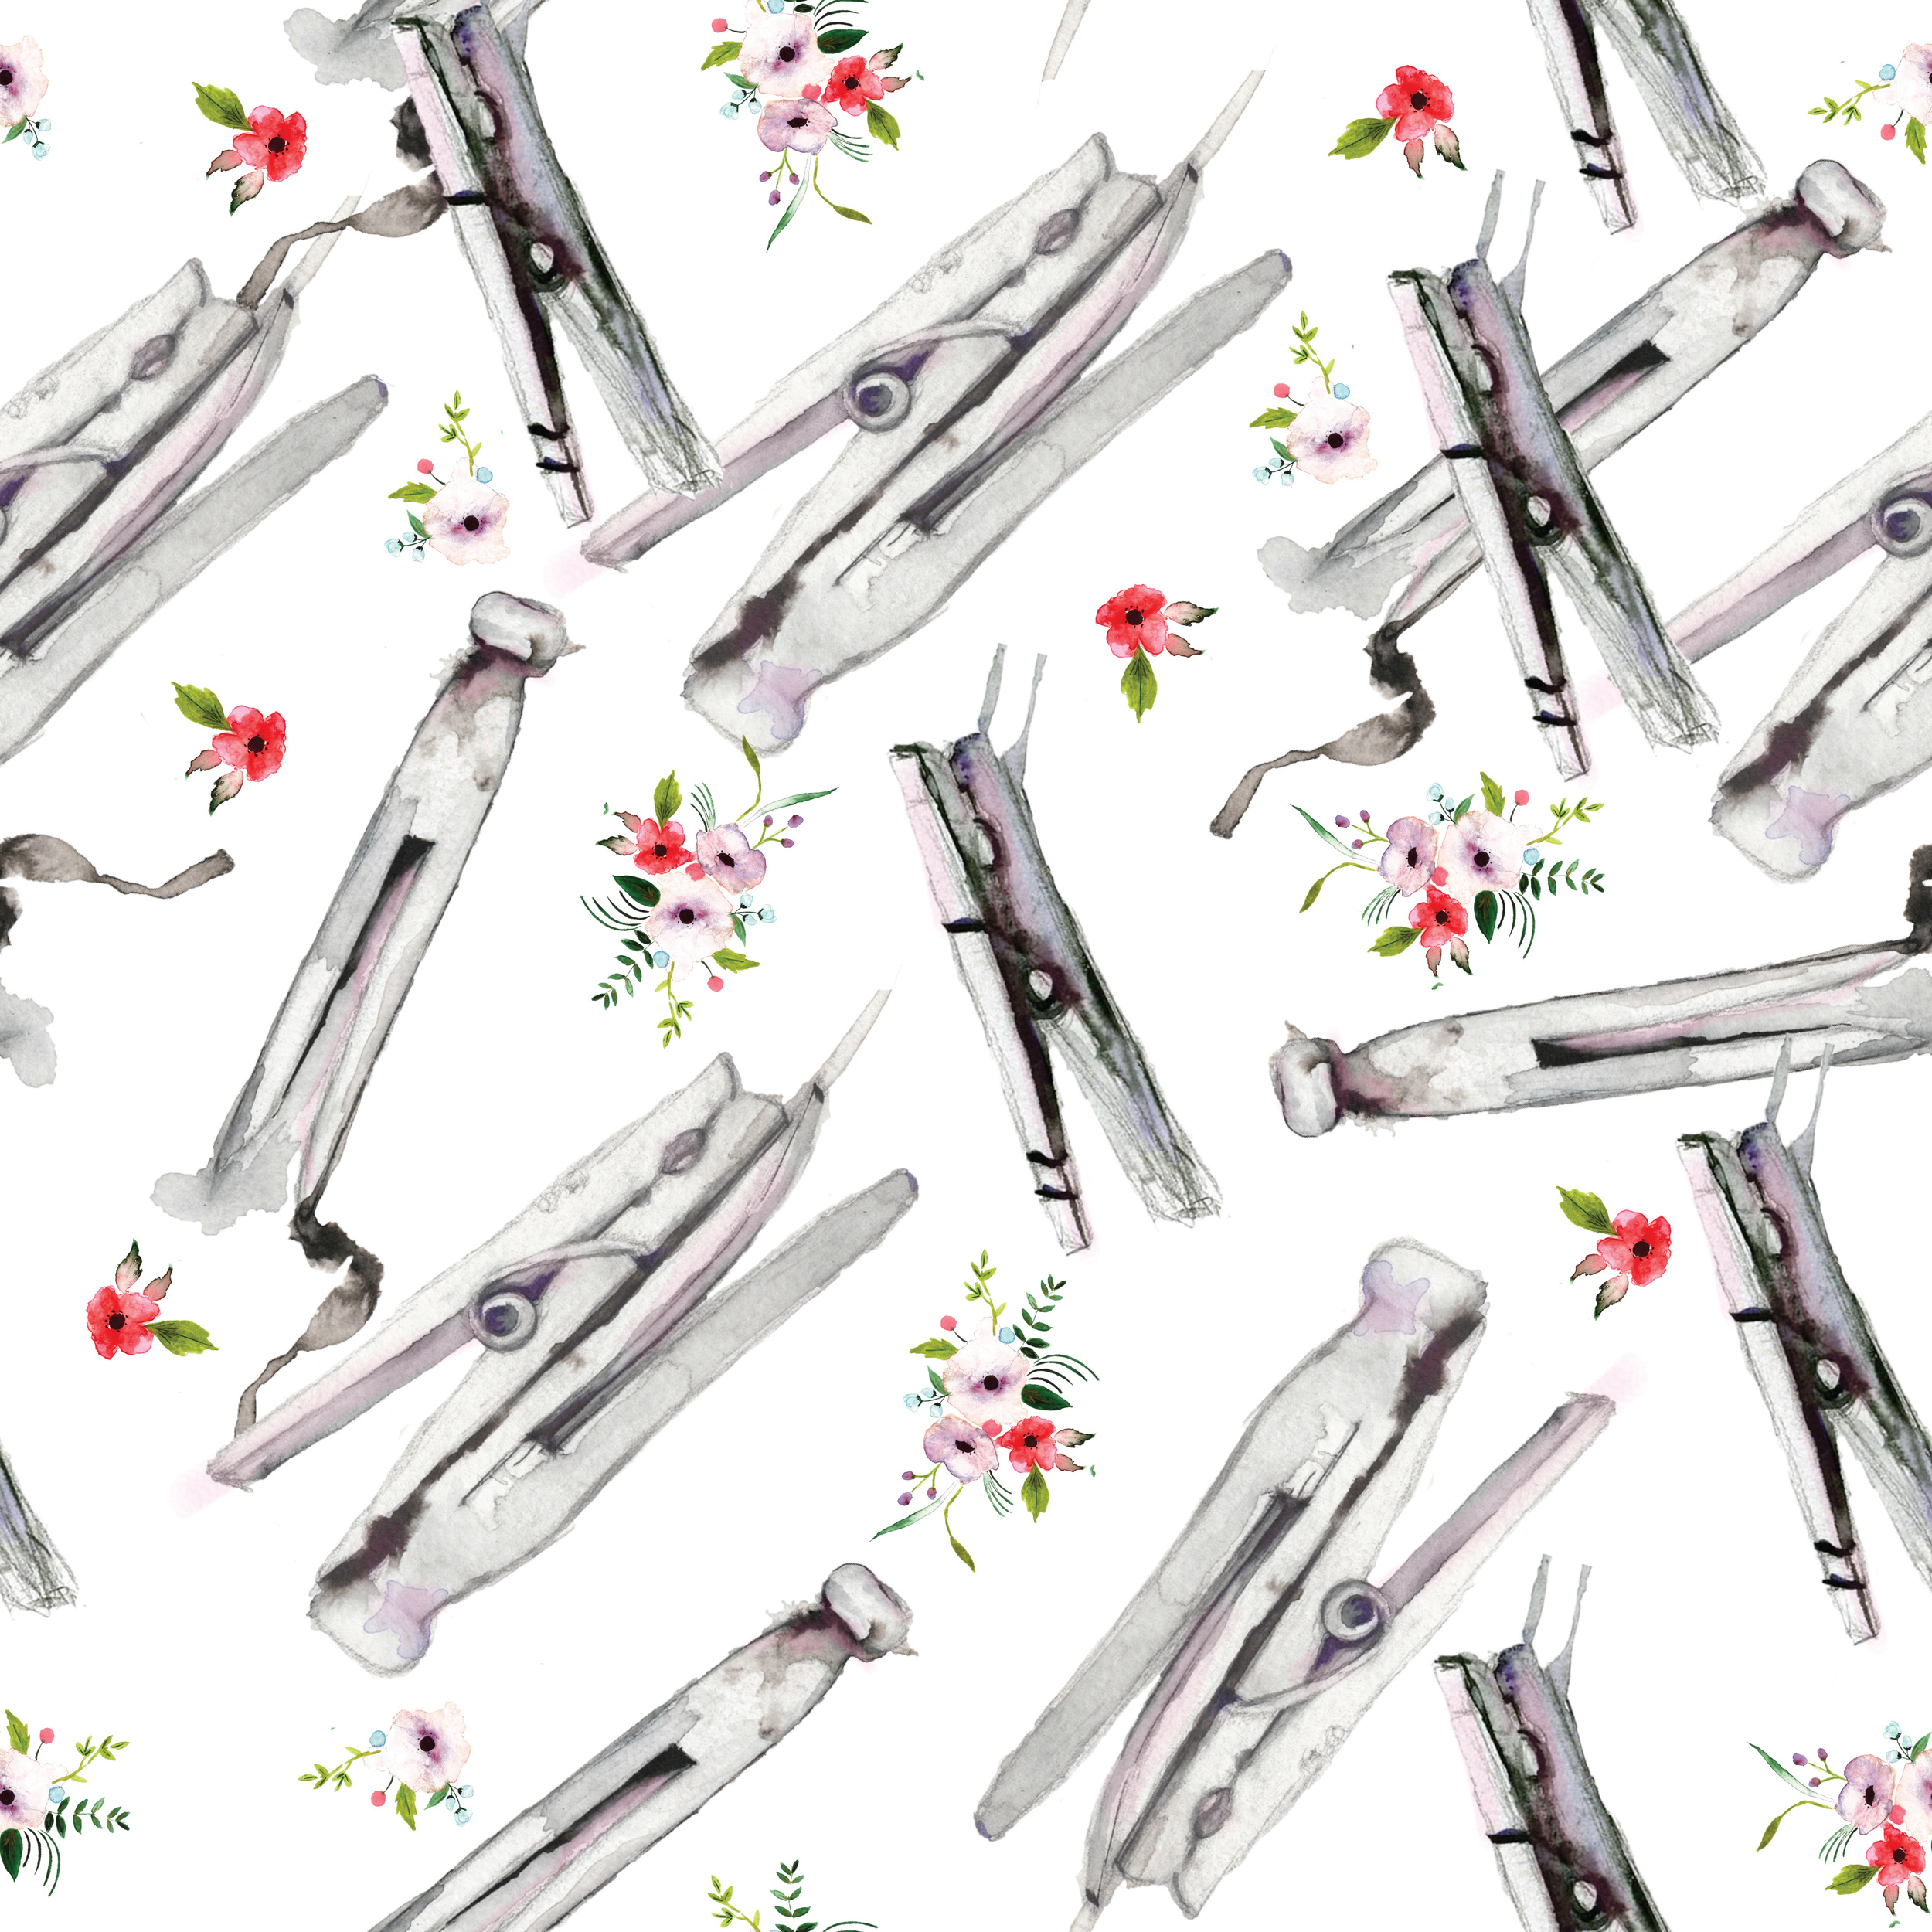 clothespin wallpaper v1-01.jpg